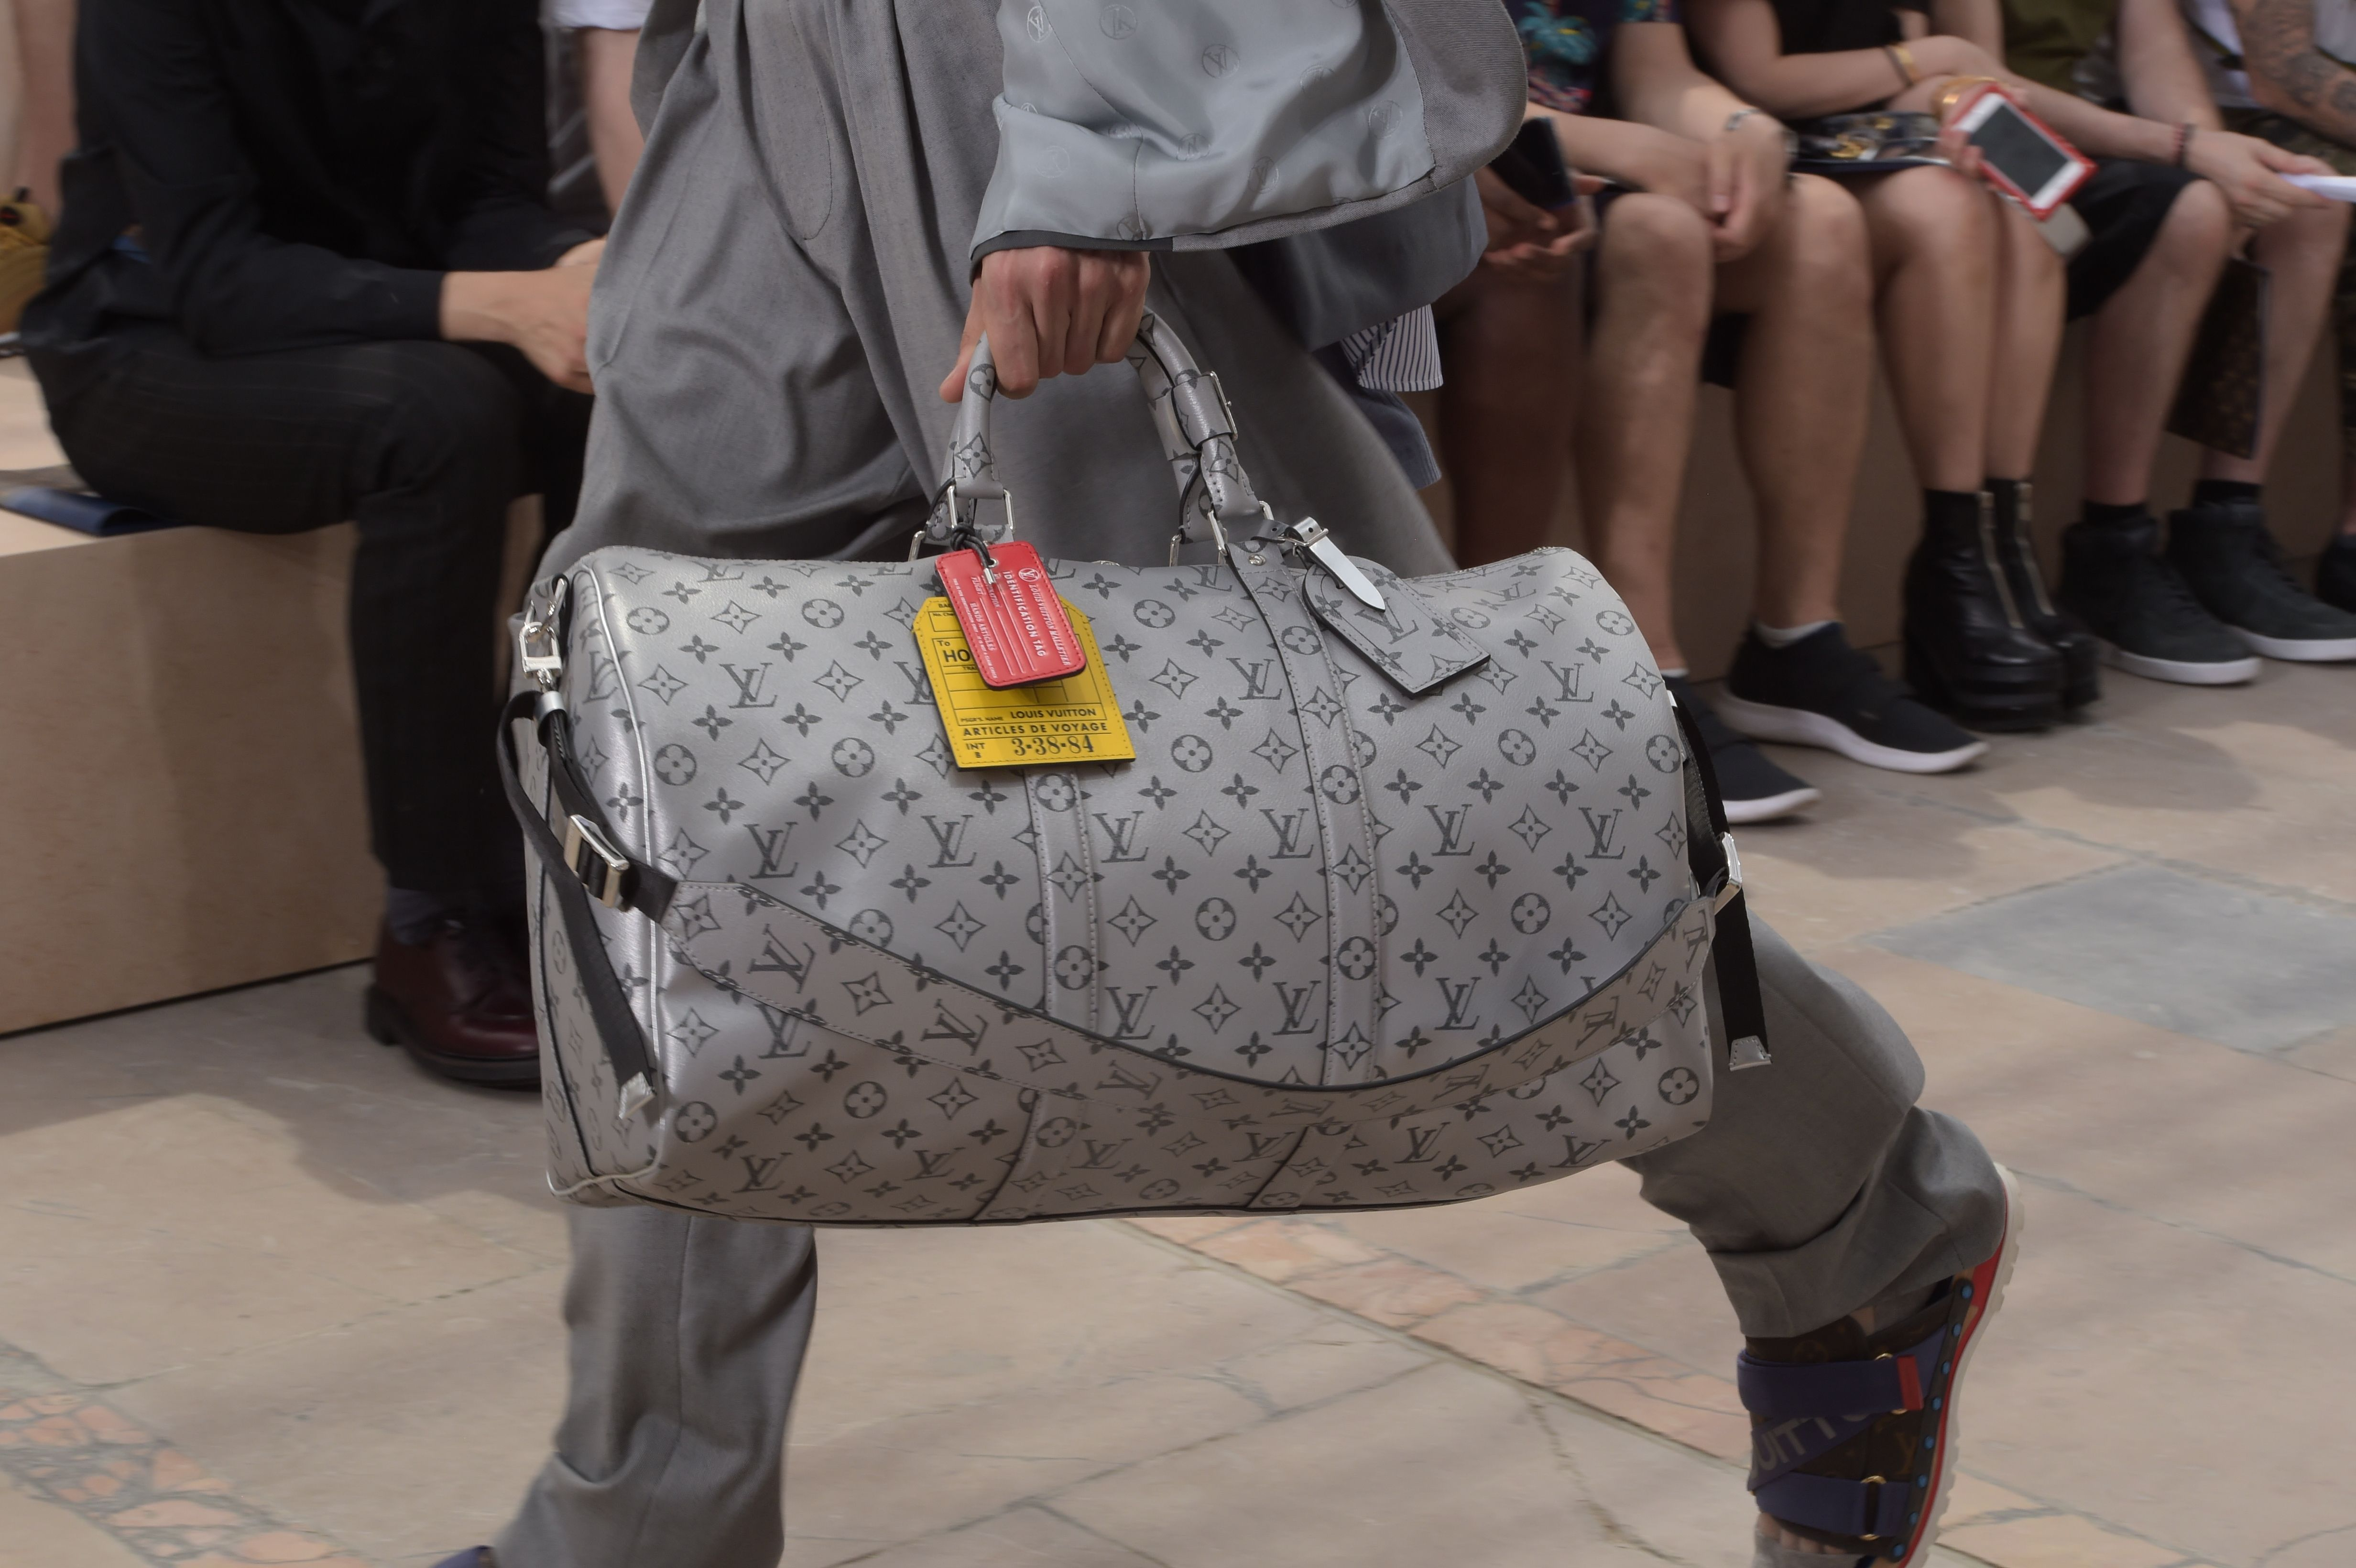 b9808c347e5 Closer look at the Monogram Reflect Keepall from the Louis Vuitton ...